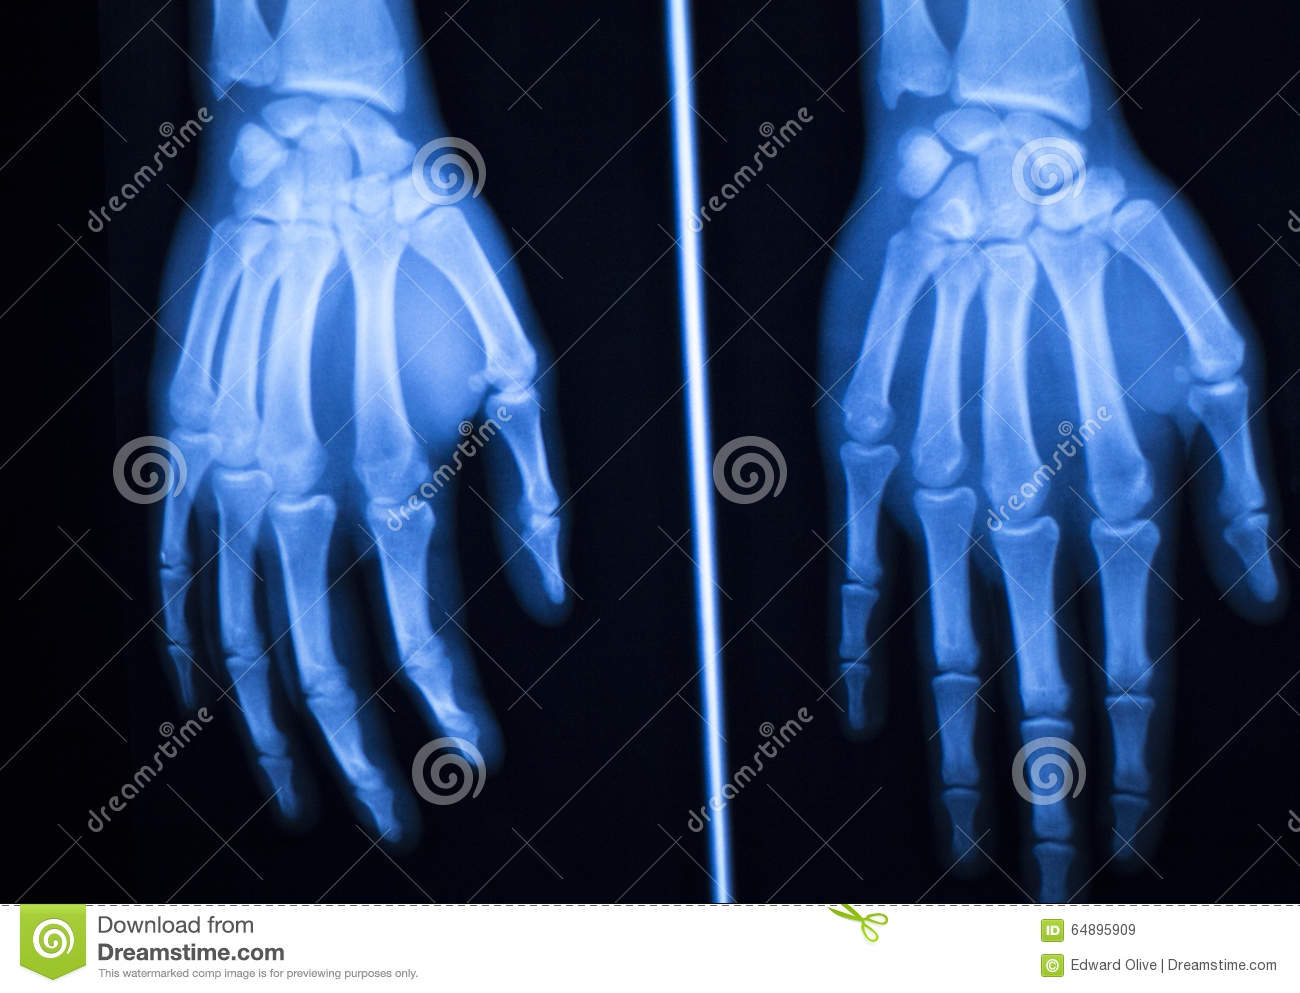 Hand Finger Thumb Hospital Xray Scan Stock Image - Image of part ...